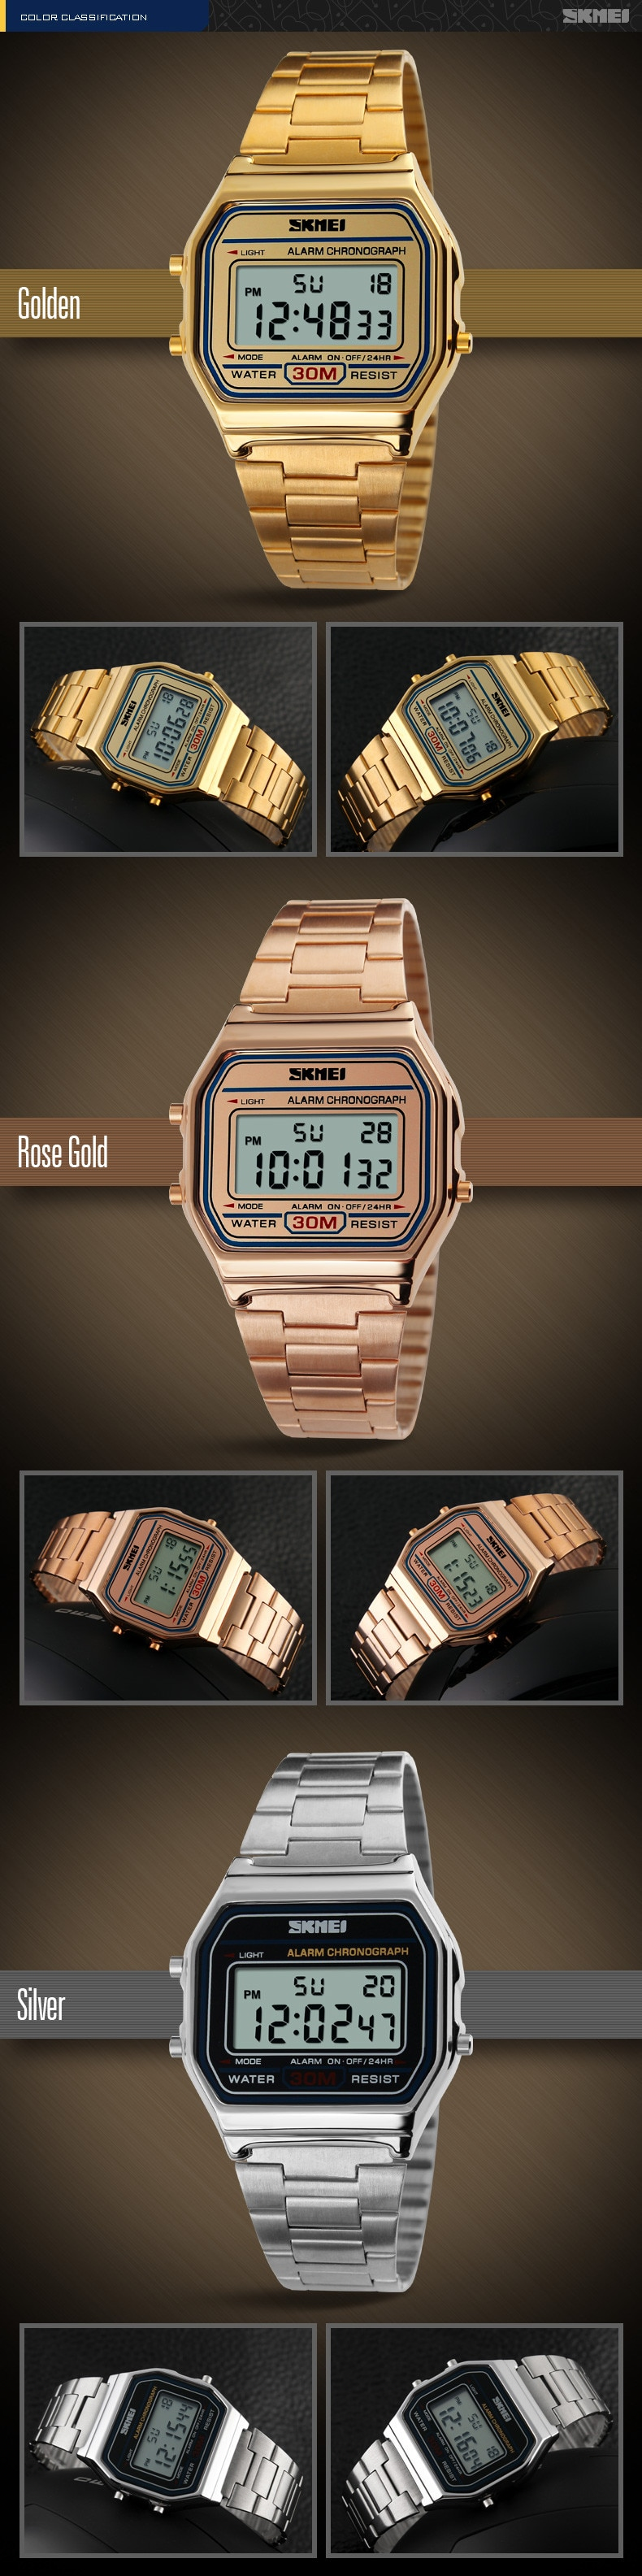 Skmei Digital Casual Men Stainless Strap Watch Anti Air Water Jam Tangan Casio 1123 Original Spesifikasi Dari Resistant Wr 30m Dg1123 Pria Formal Kerja Tali Besi Fashion